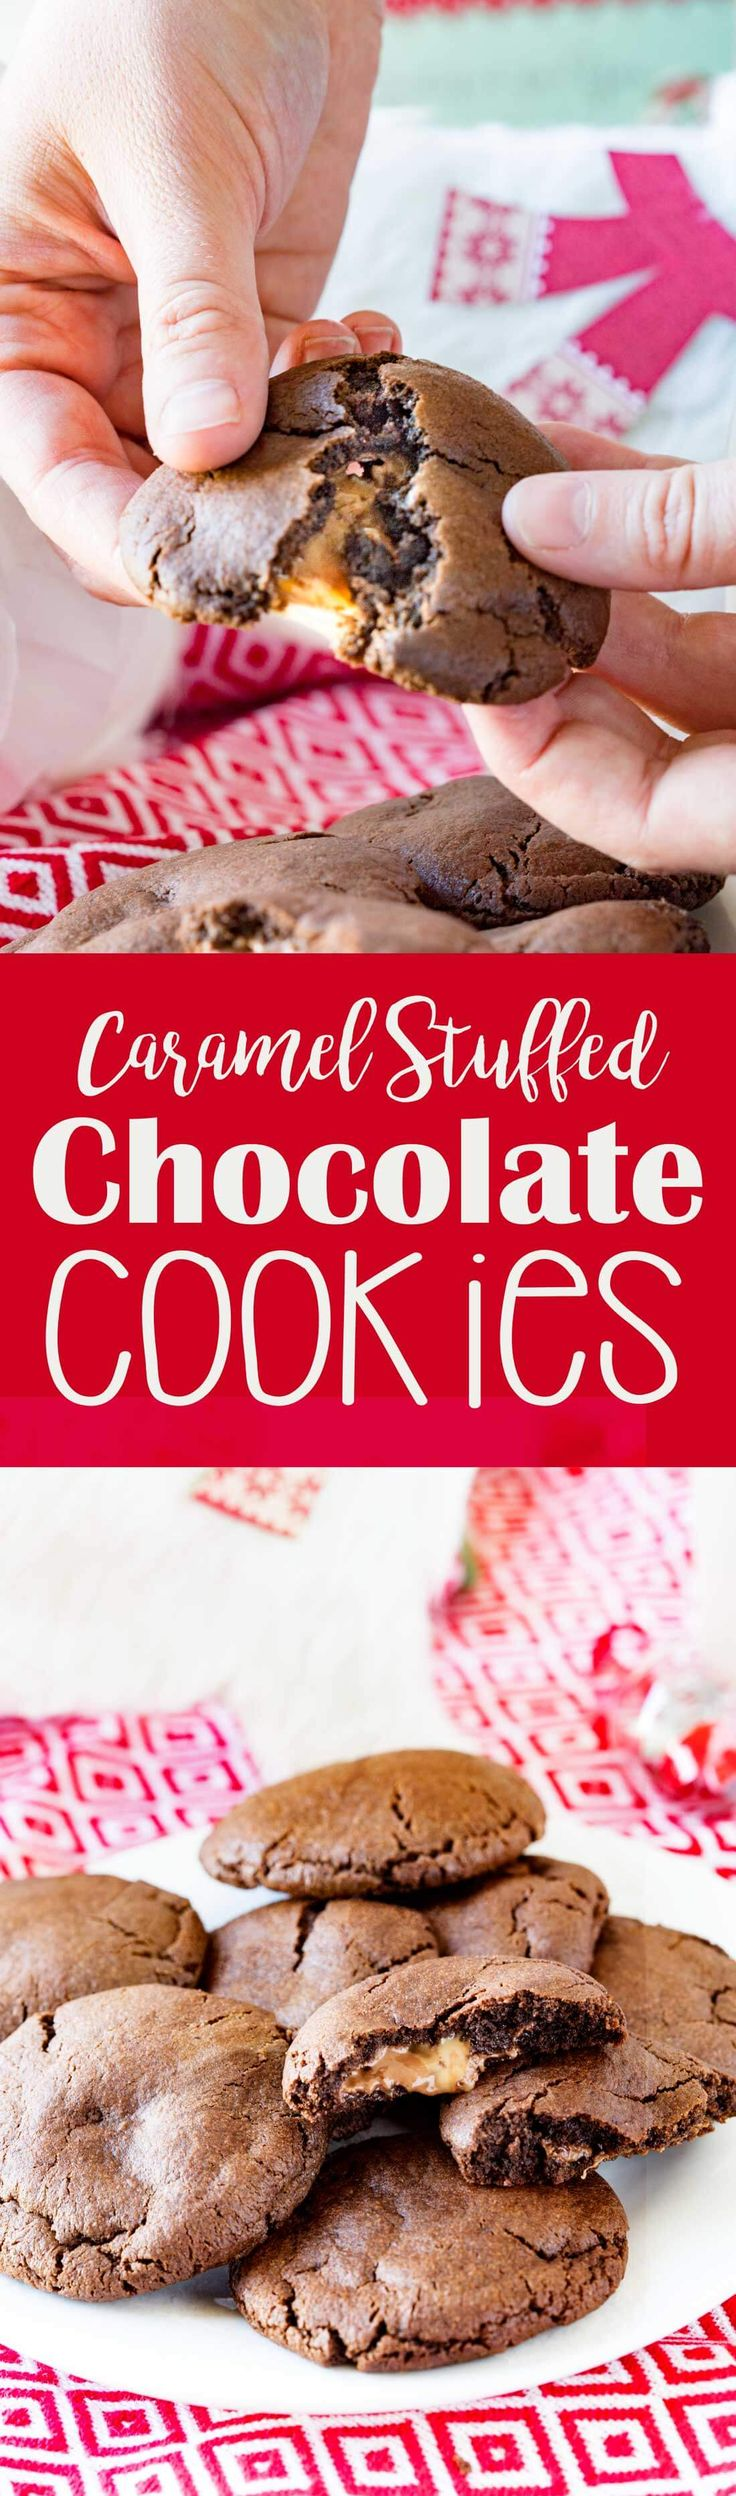 Caramel Stuffed Chocolate Cookies are perfect for the holidays. #ad #MerryAndBright